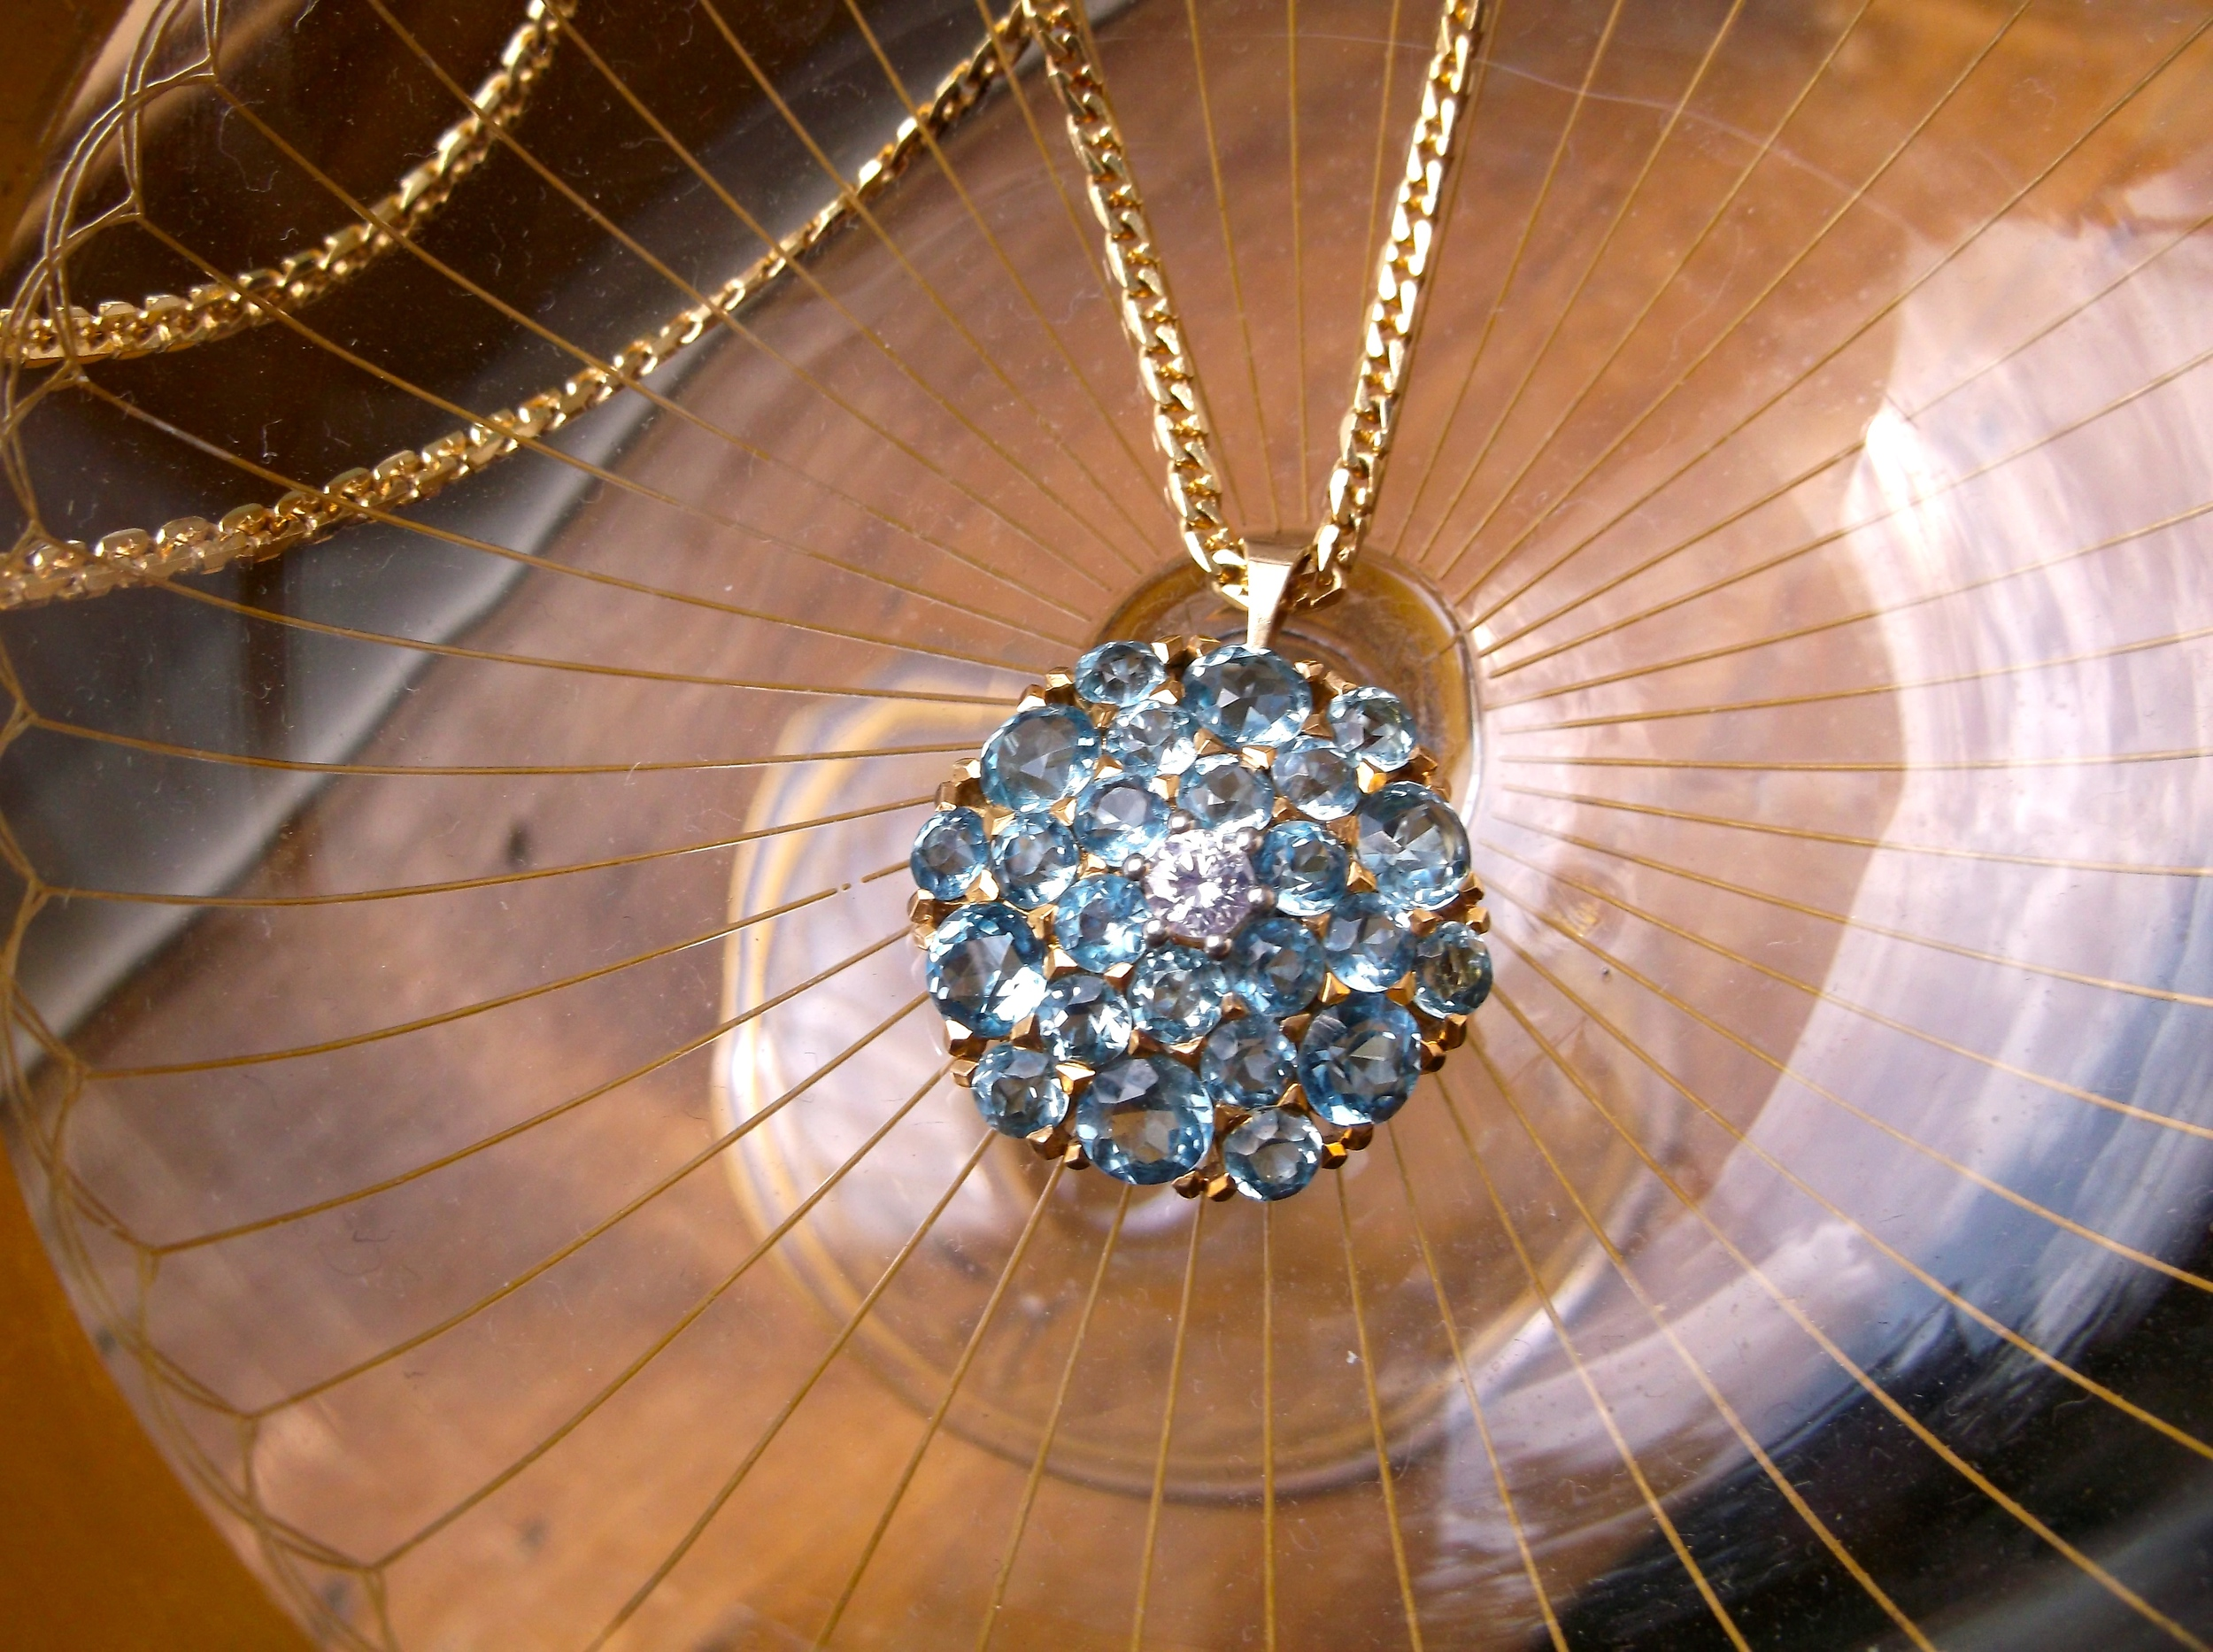 SOLD - Mesmerizing aquamarine pendant with a diamond in the center set in yellow gold.